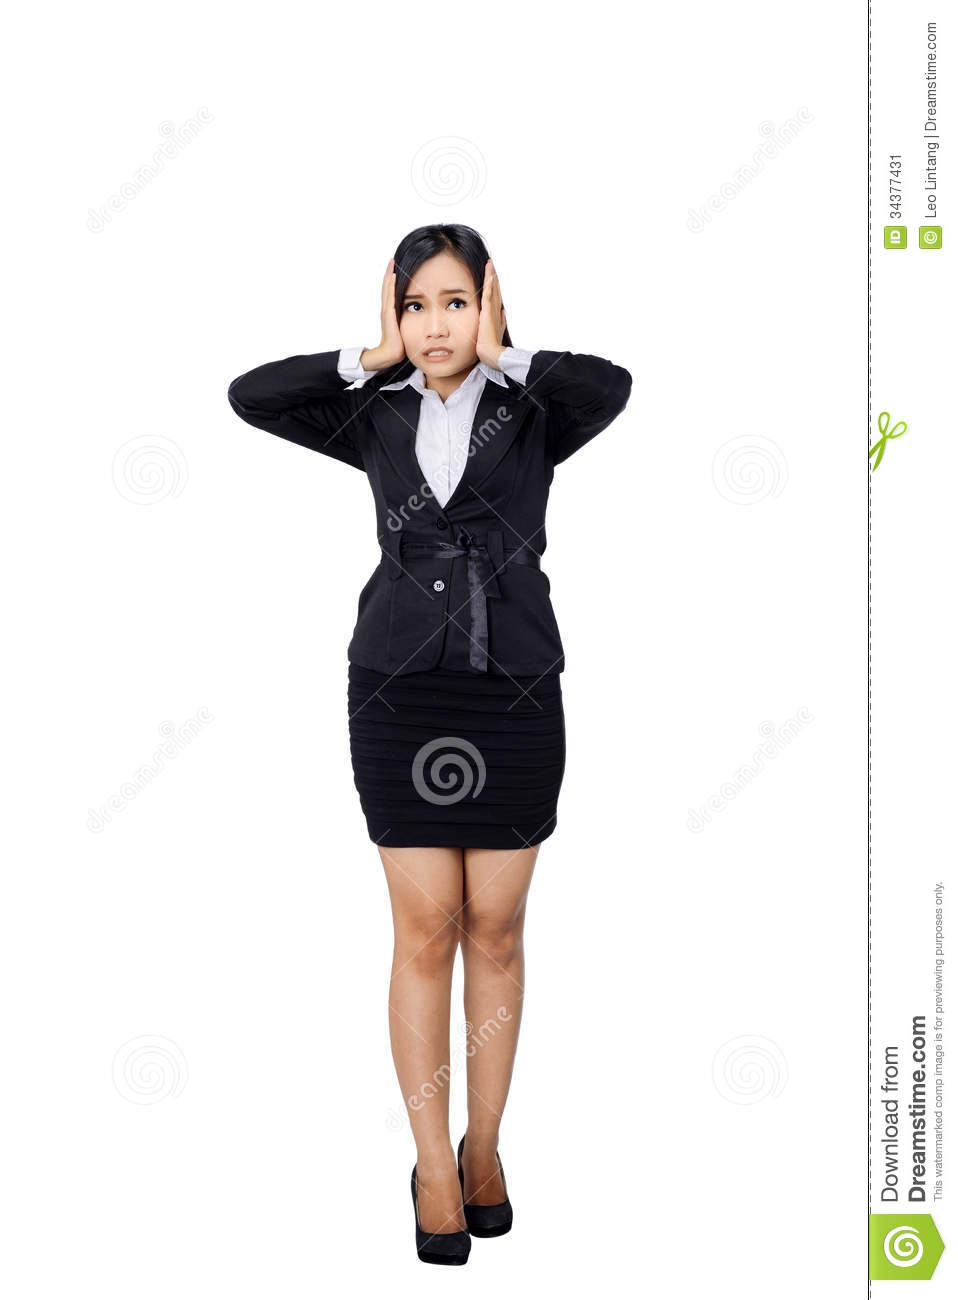 Nervous Scared Business Woman Stock Image - Image: 34377431